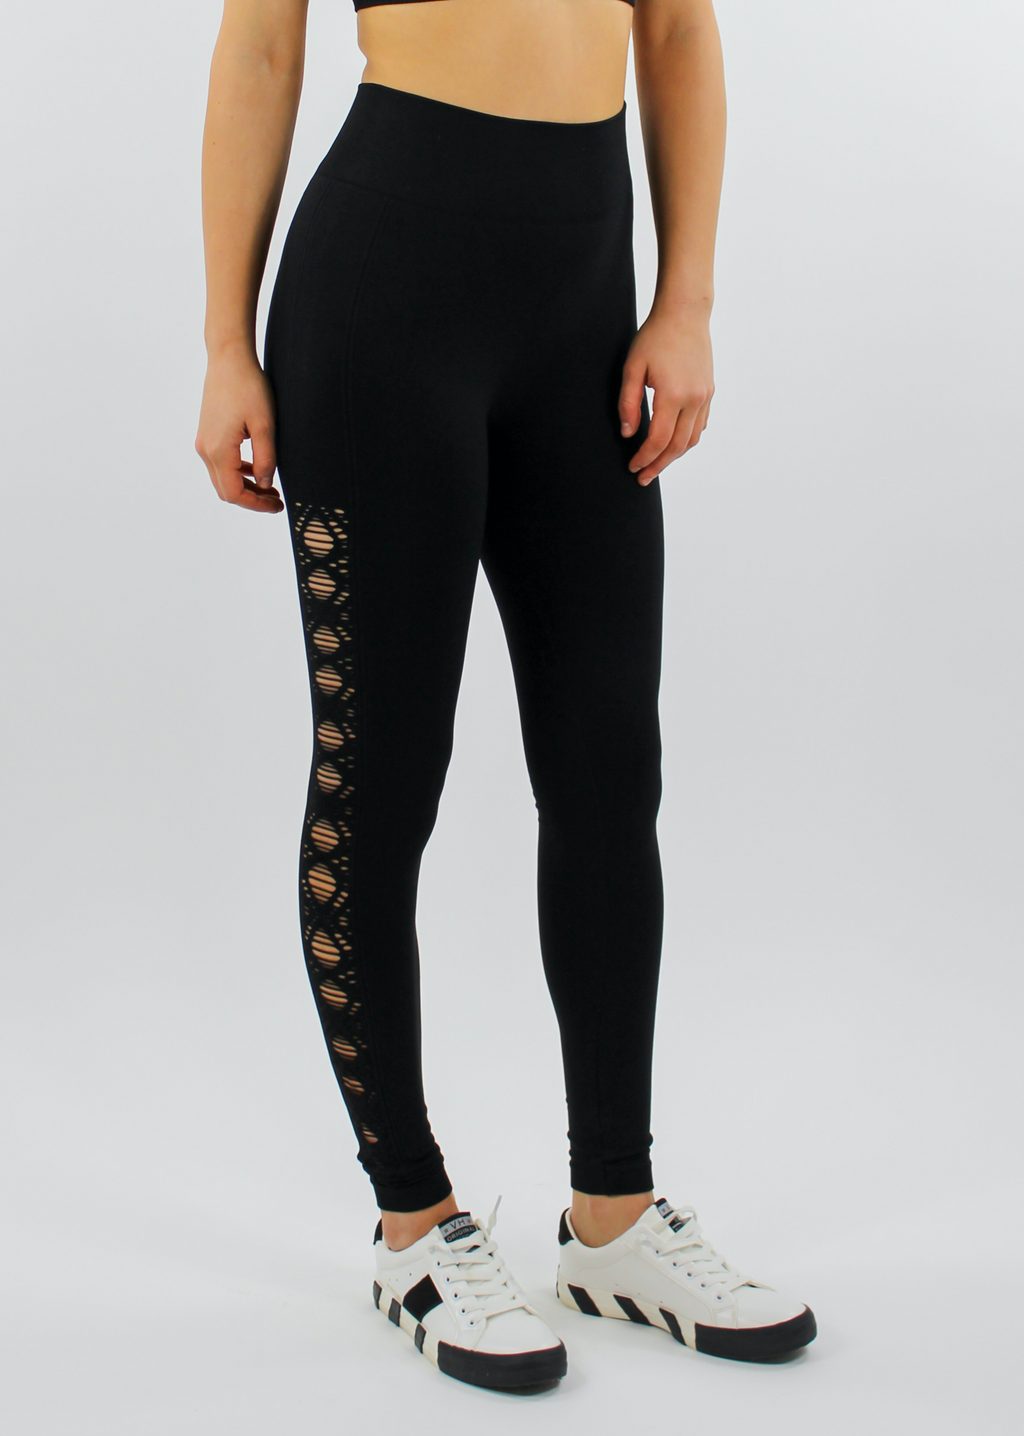 Good as Hell Leggings ★ Black - Rock N Rags